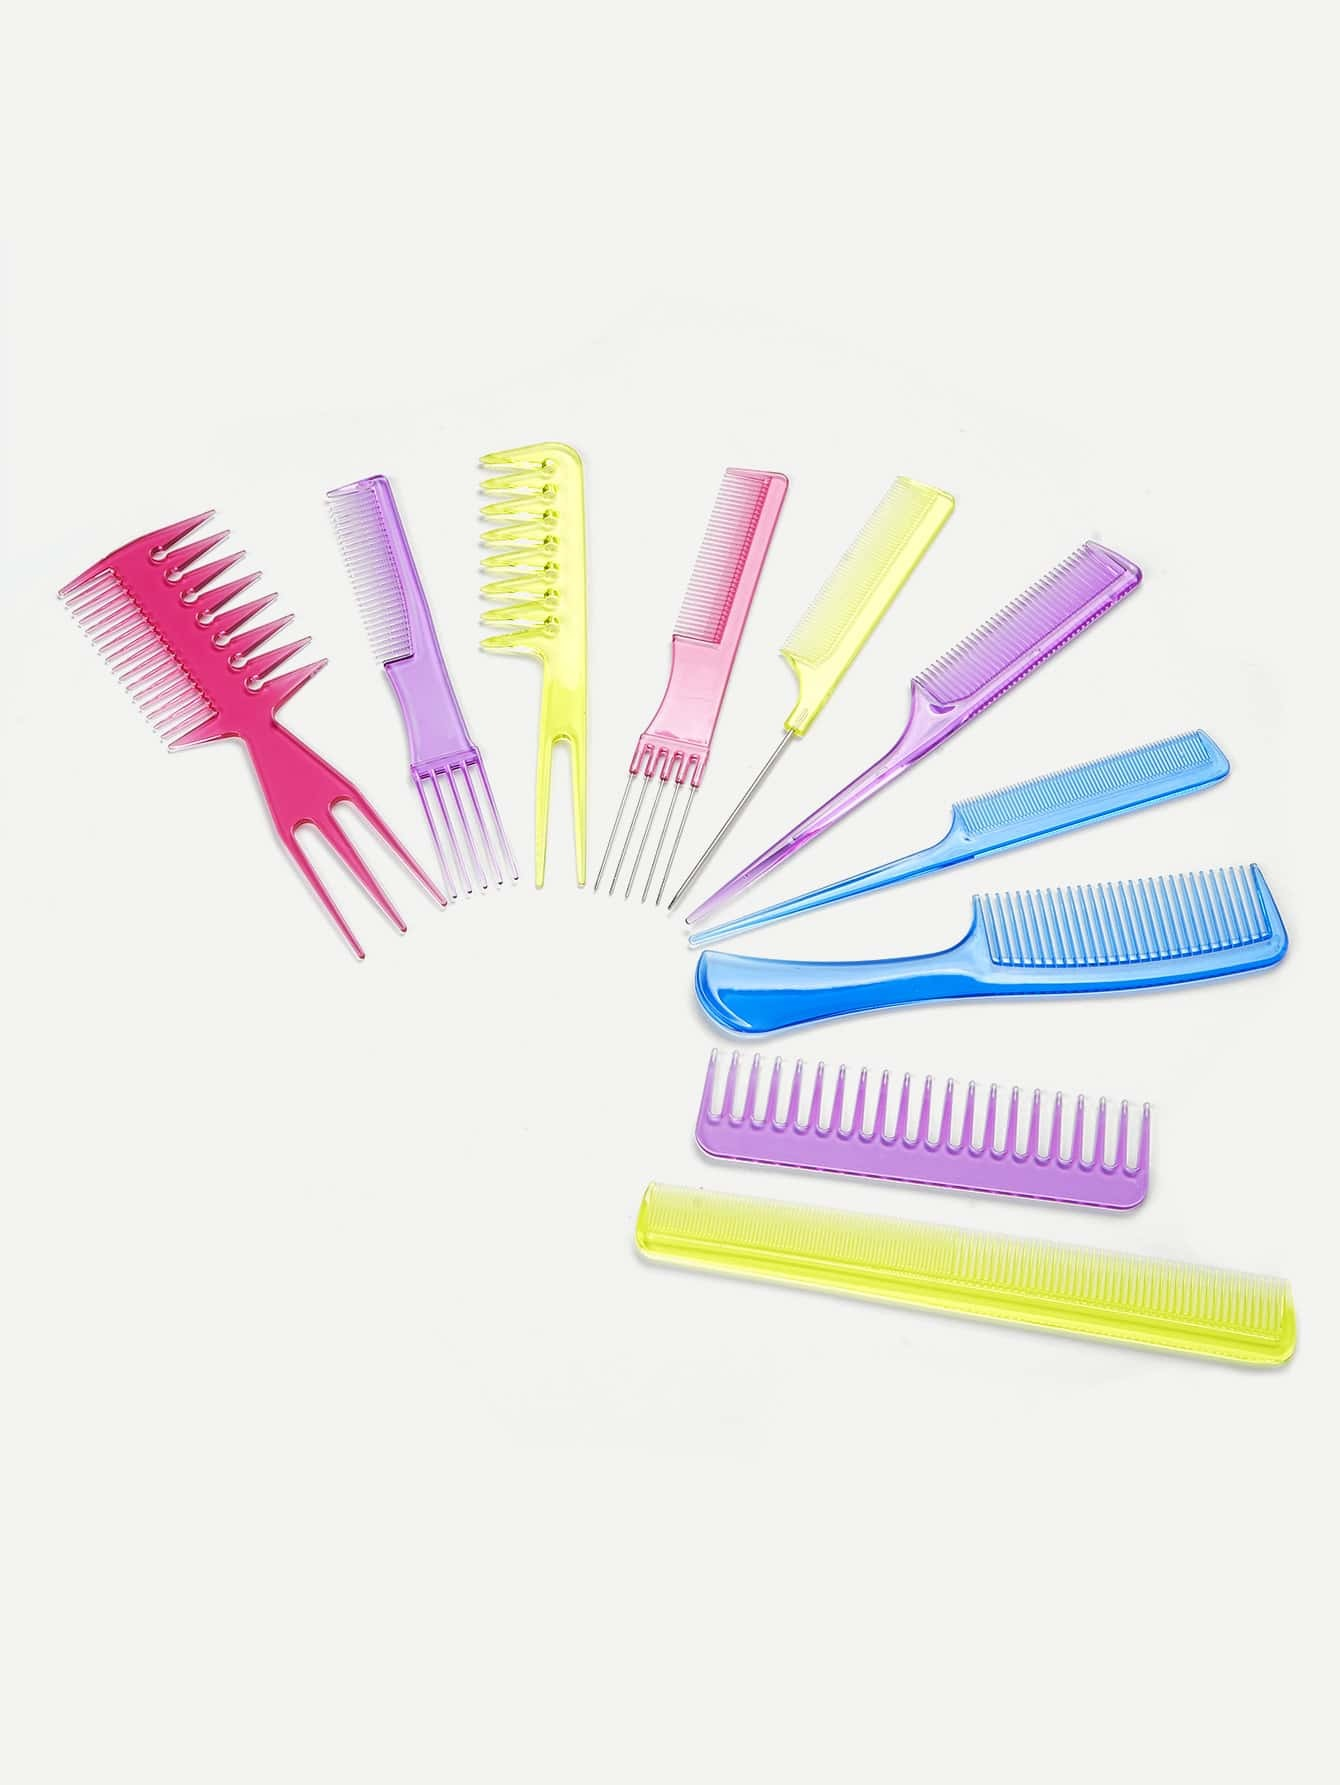 Multi Shaped Hair Comb Set high quality scalp massage comb 3 color mixed hair hair curls comb send elders the best gifts health care tools